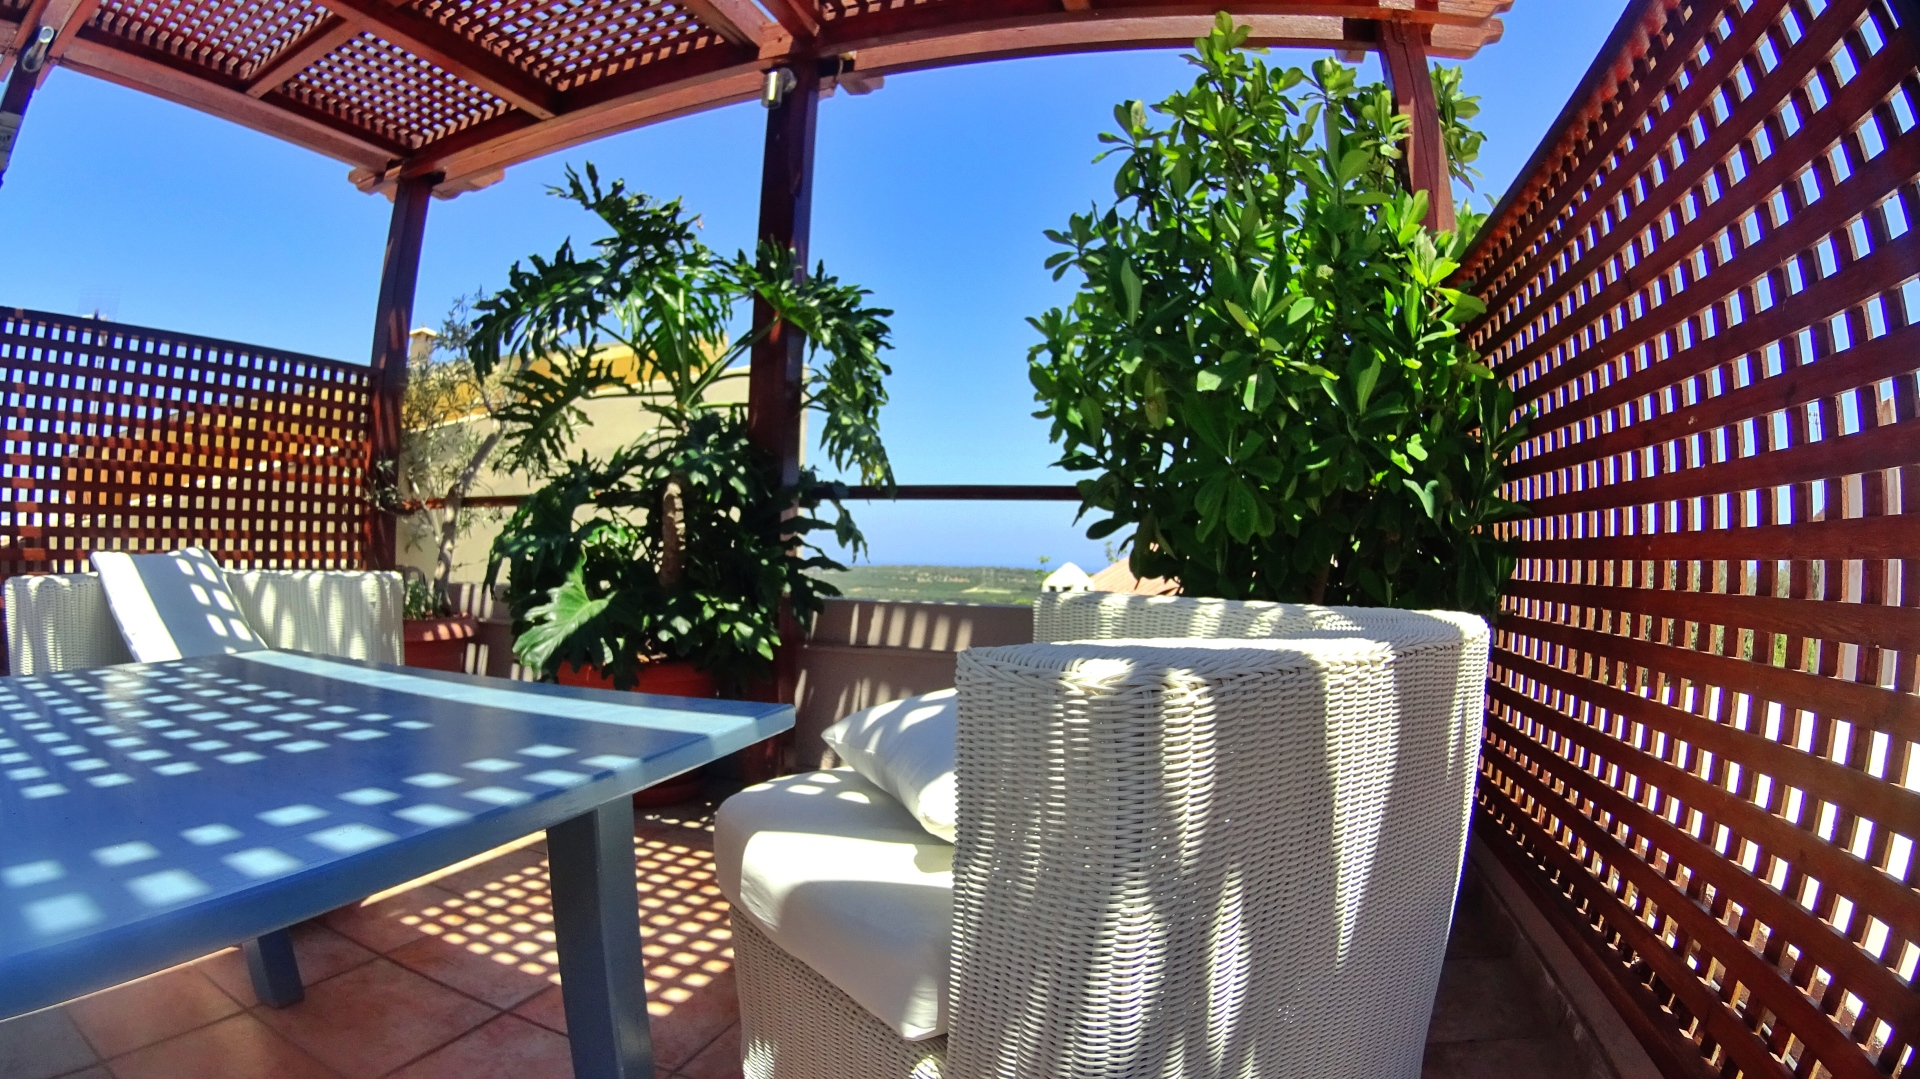 The lounging deck on the roof garden offers 360o panoramic views